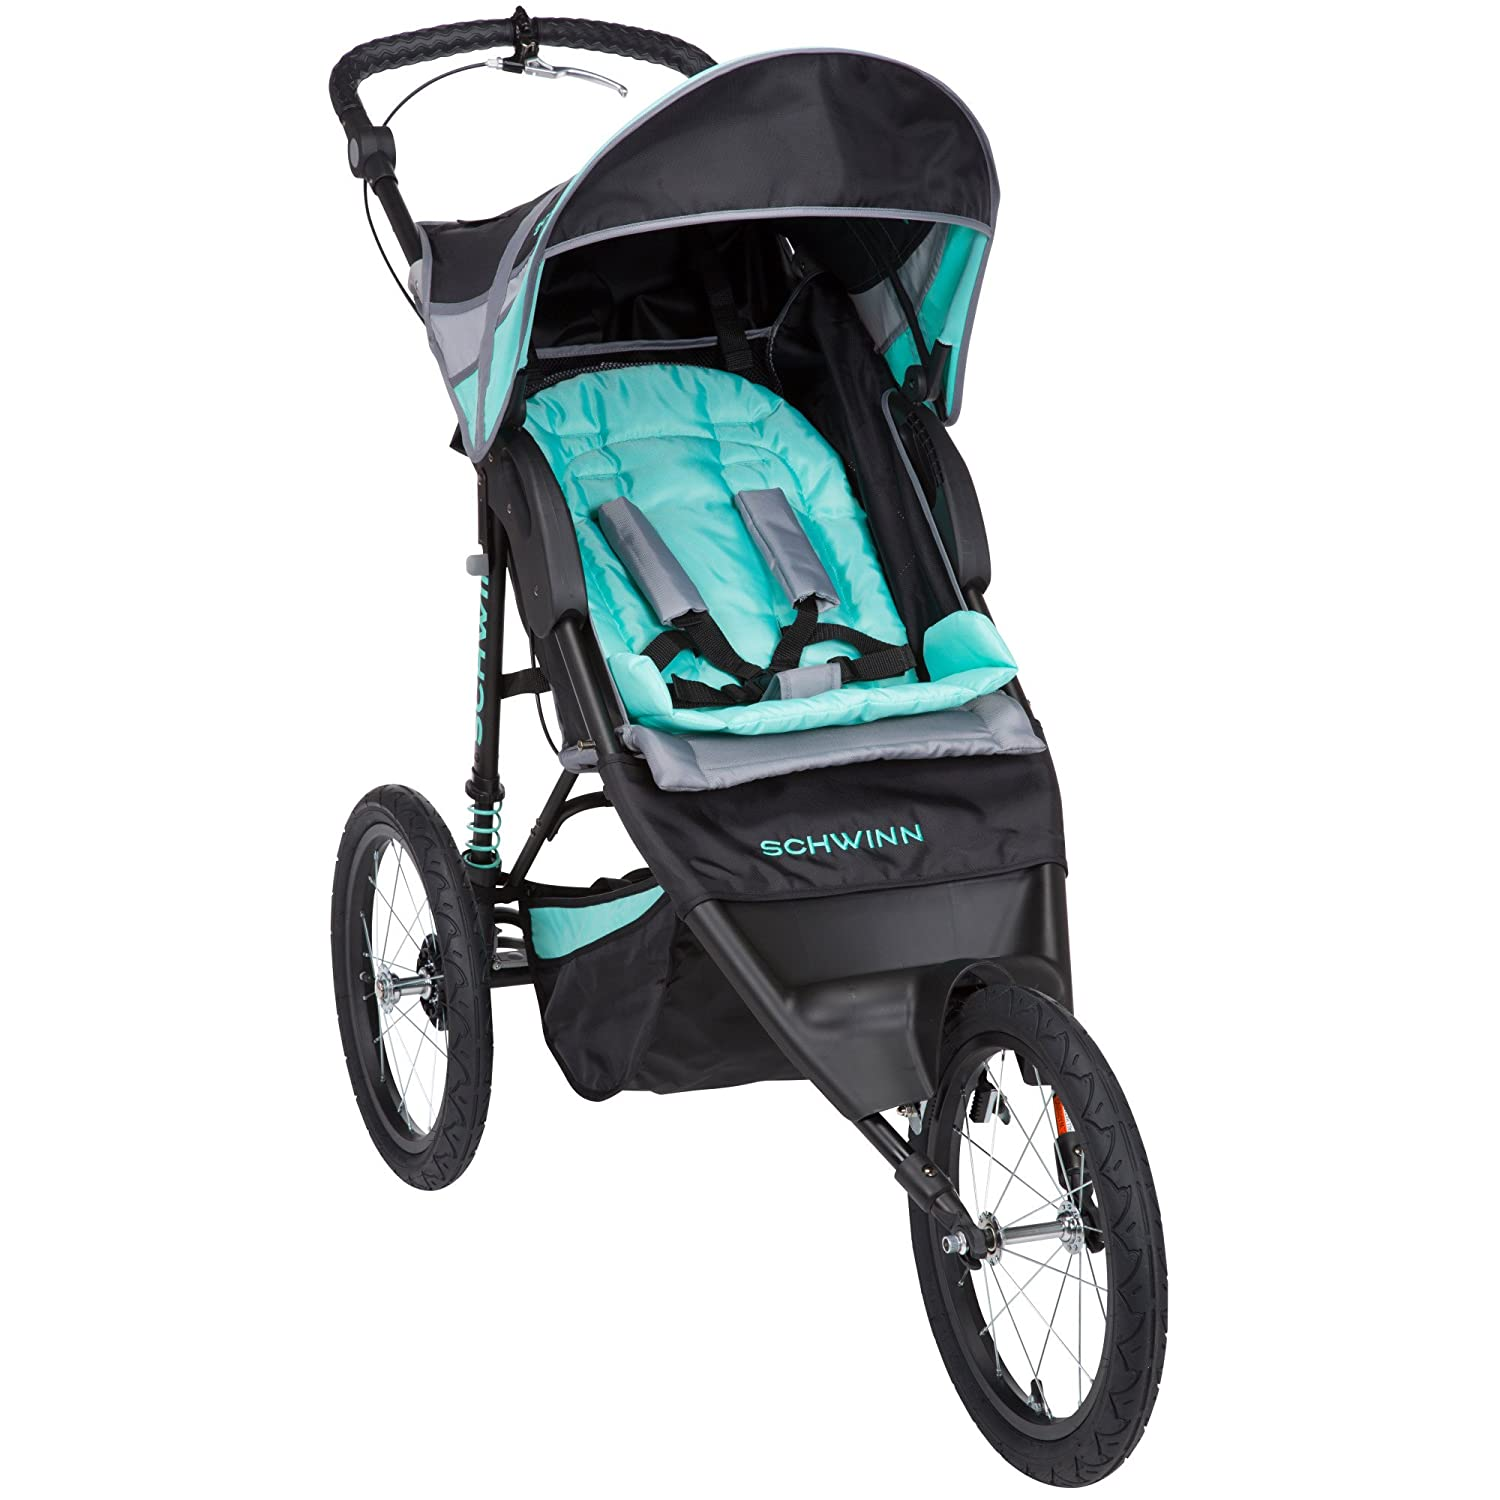 Schwinn Arrow Jogging Stroller Review